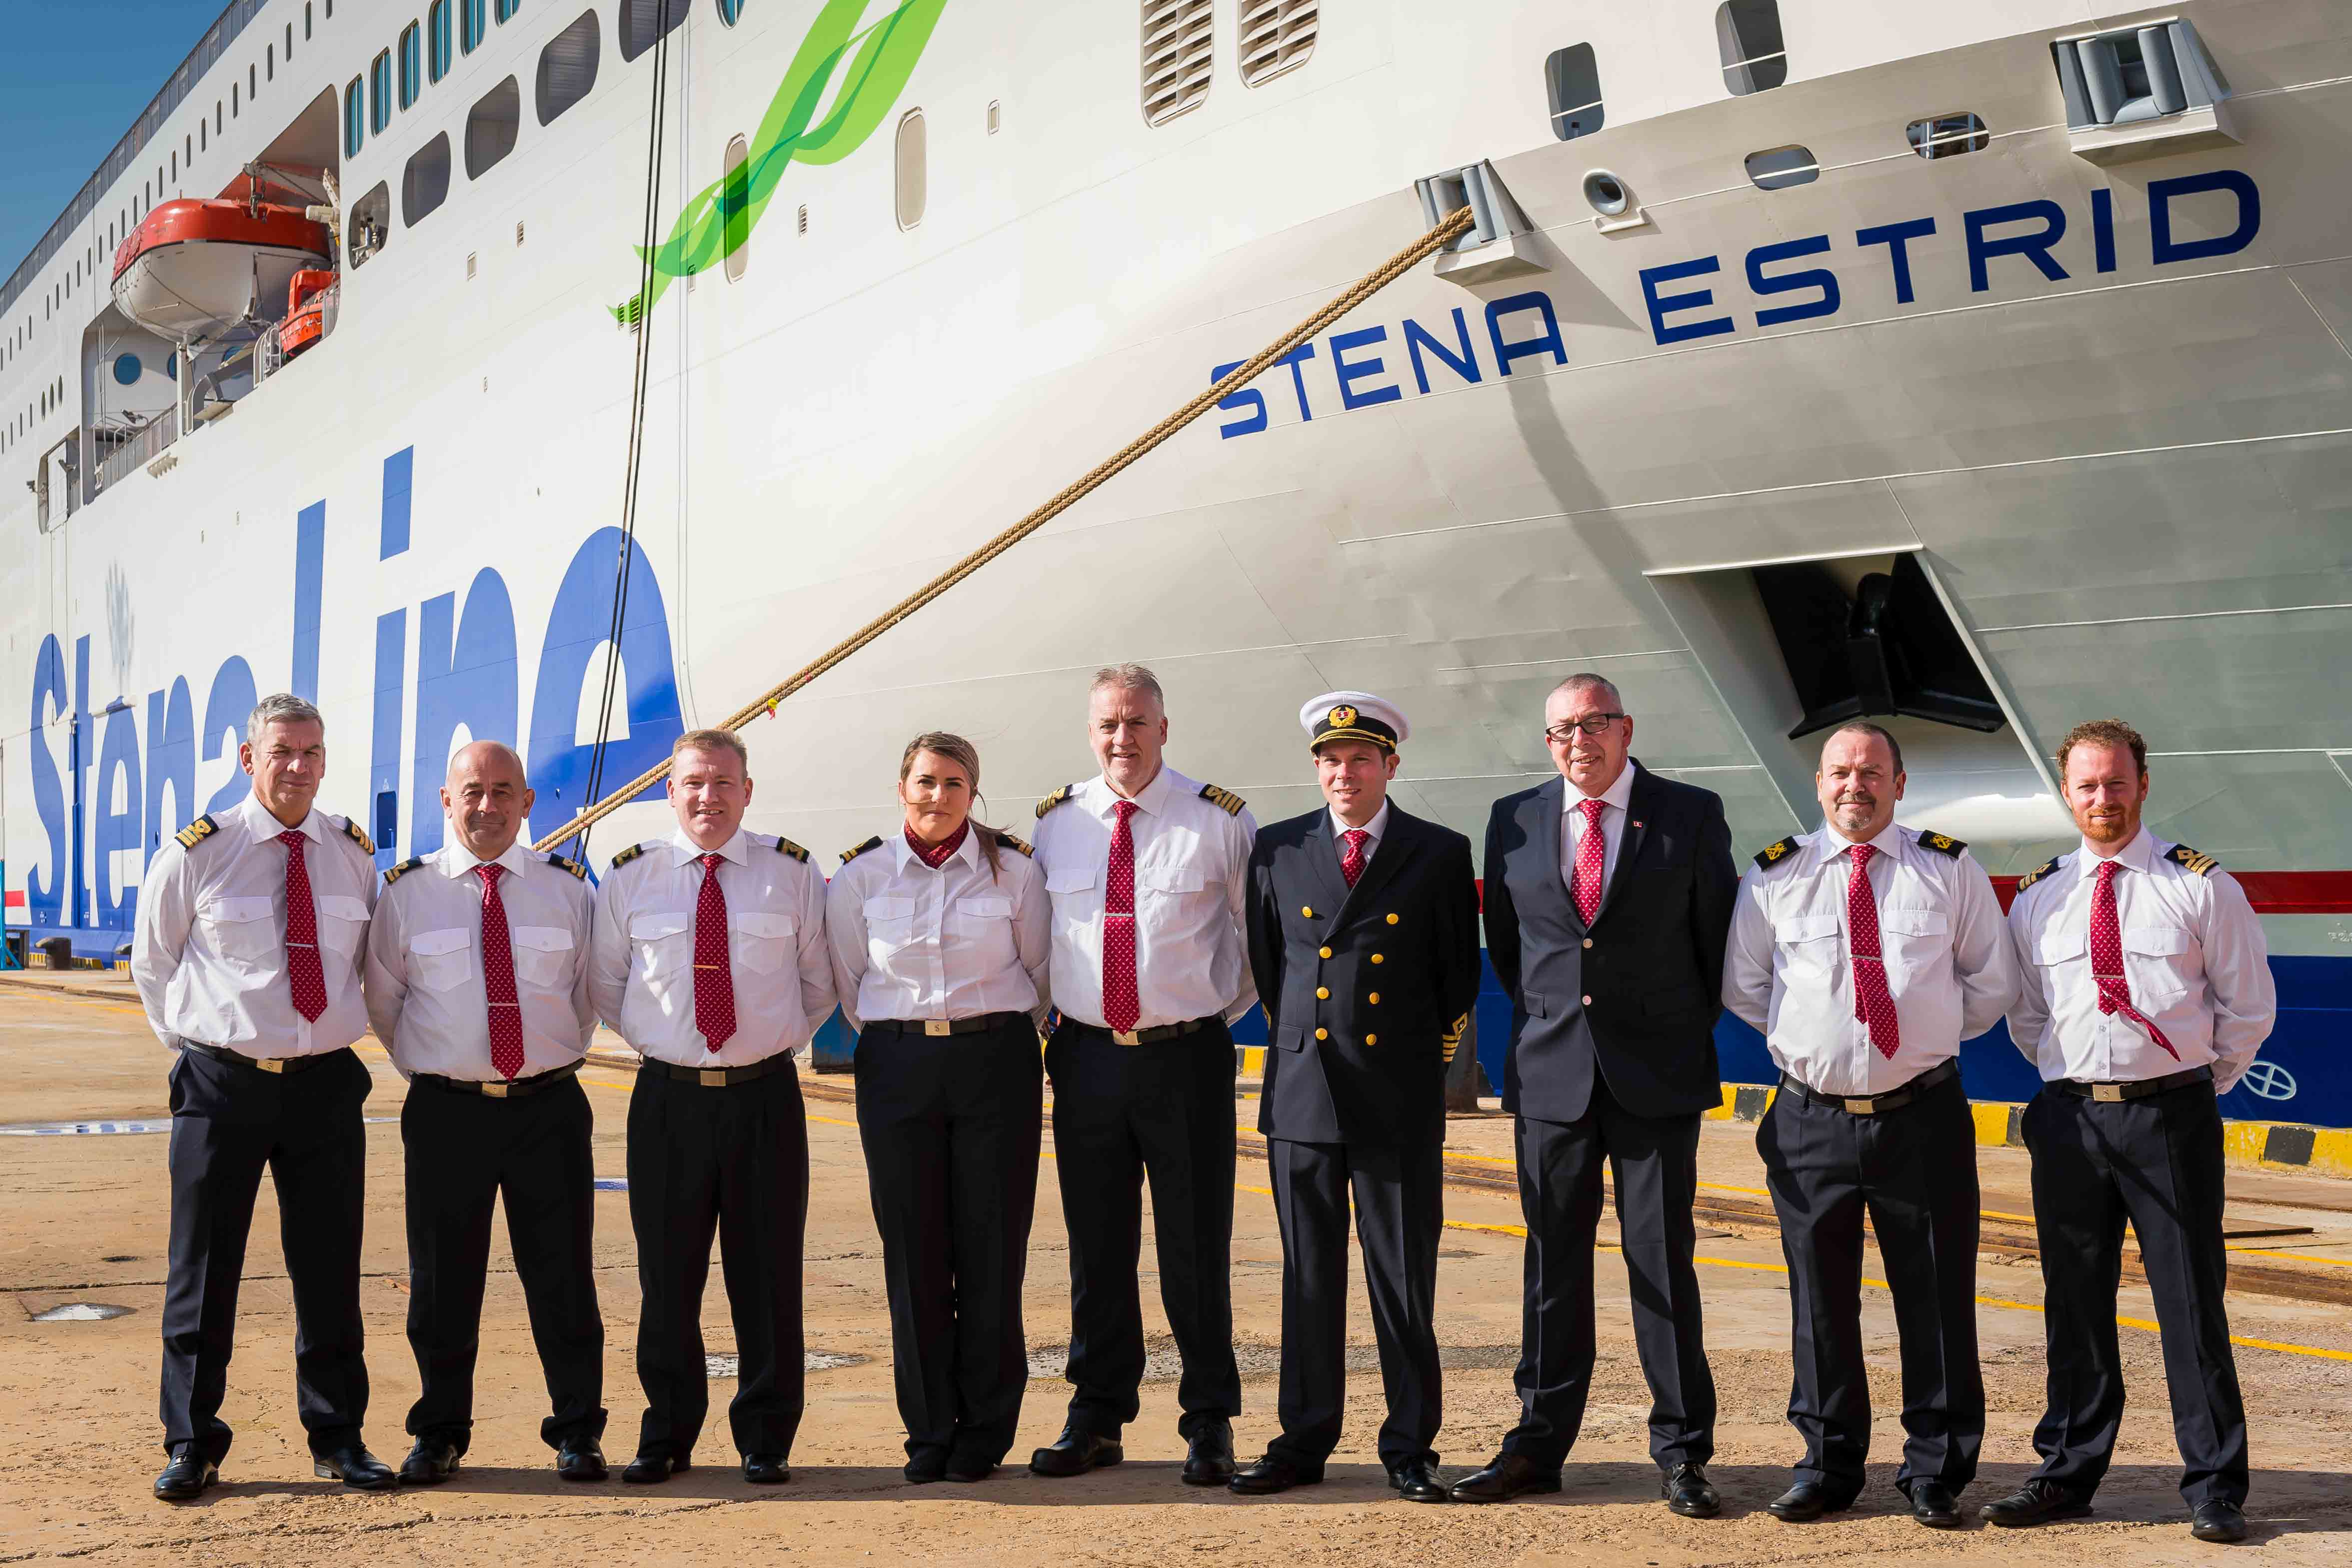 SHIP SHAPE: Senior Master Matthew Lynch (4th from right) is pictured with Stena Line's newest ferry Stena Estrid and crew members (l-r) Mark Connell, John Thomas, Jason Rafferty, Cora Bonham, David Morris, Stephen Davies, Ian Grimes and Marc Young. Captain 'Matt' and his crew are currently steering Stena Estrid on its 10,000 mile journey from the AVIC Weihai Shipyard in China, where it was built, to the Irish Sea where it will start service on the Holyhead to Dublin route in January.